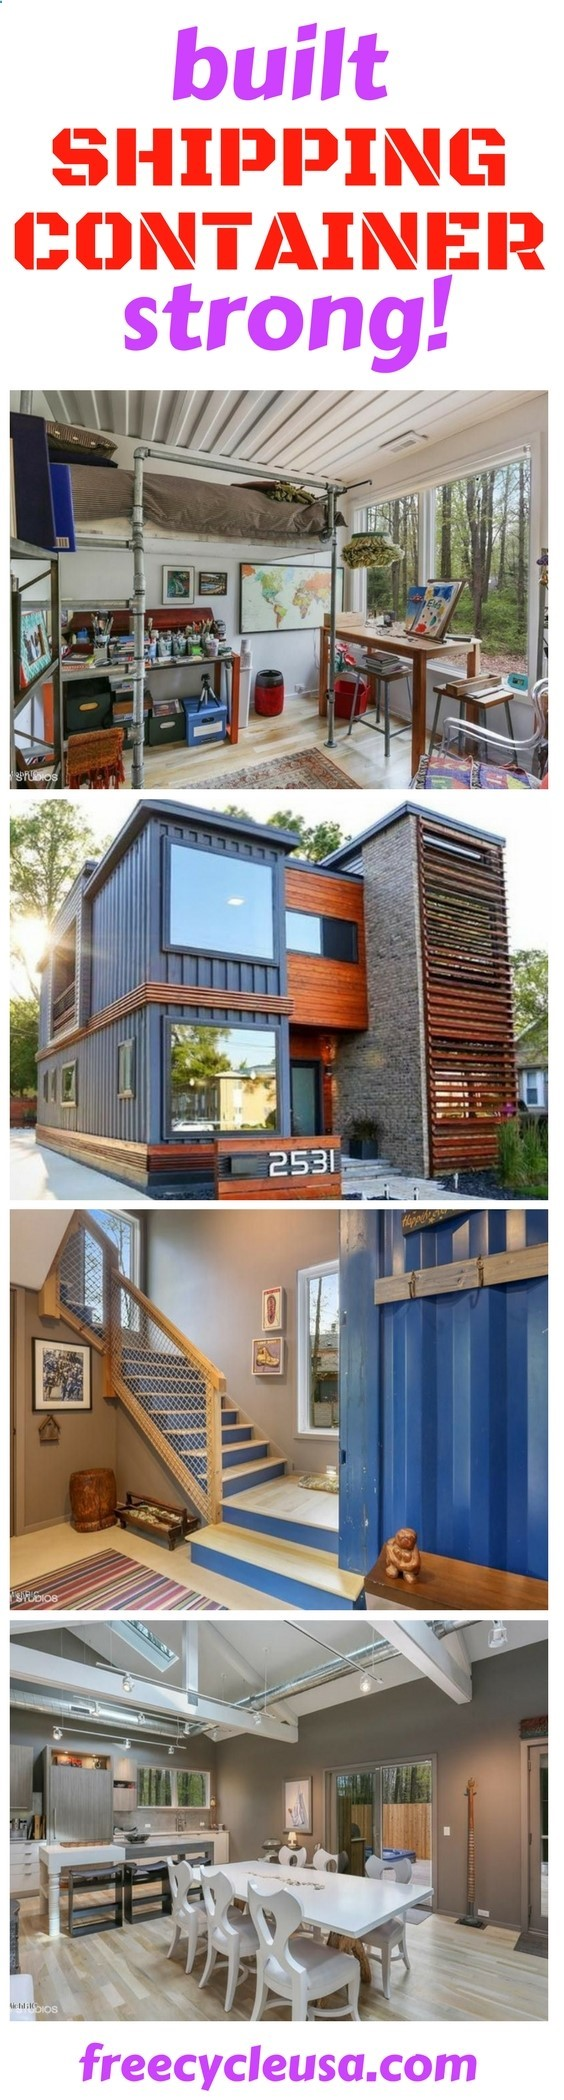 Container House - Shipping Container Home Guide Who Else Wants Simple Step-By-Step Plans To Design And Build A Container Home From Scratch?